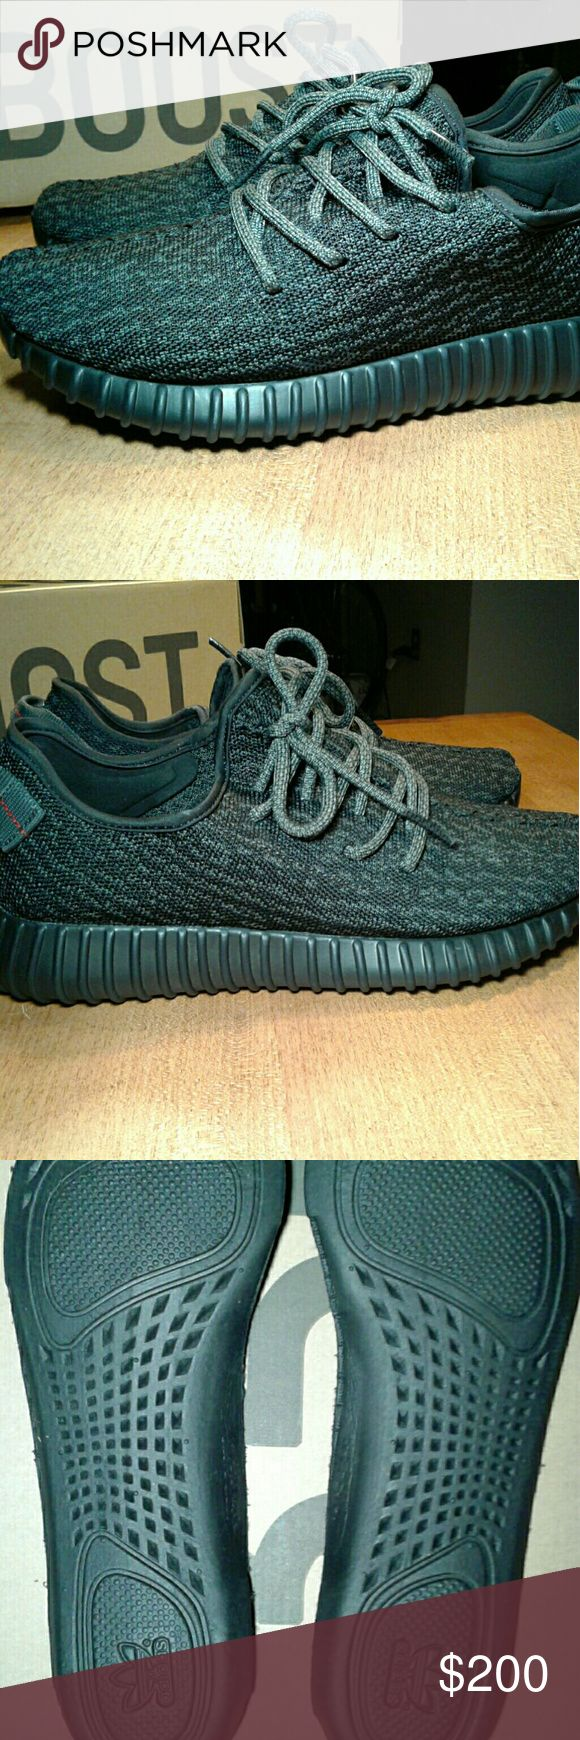 Men's Adidas Yeezy Boost Pirate Black Sneakers Perfect condition. Box goes with another pair in the family but including it just to have one. Carefully worn a couple of times. Adidas Shoes Sneakers